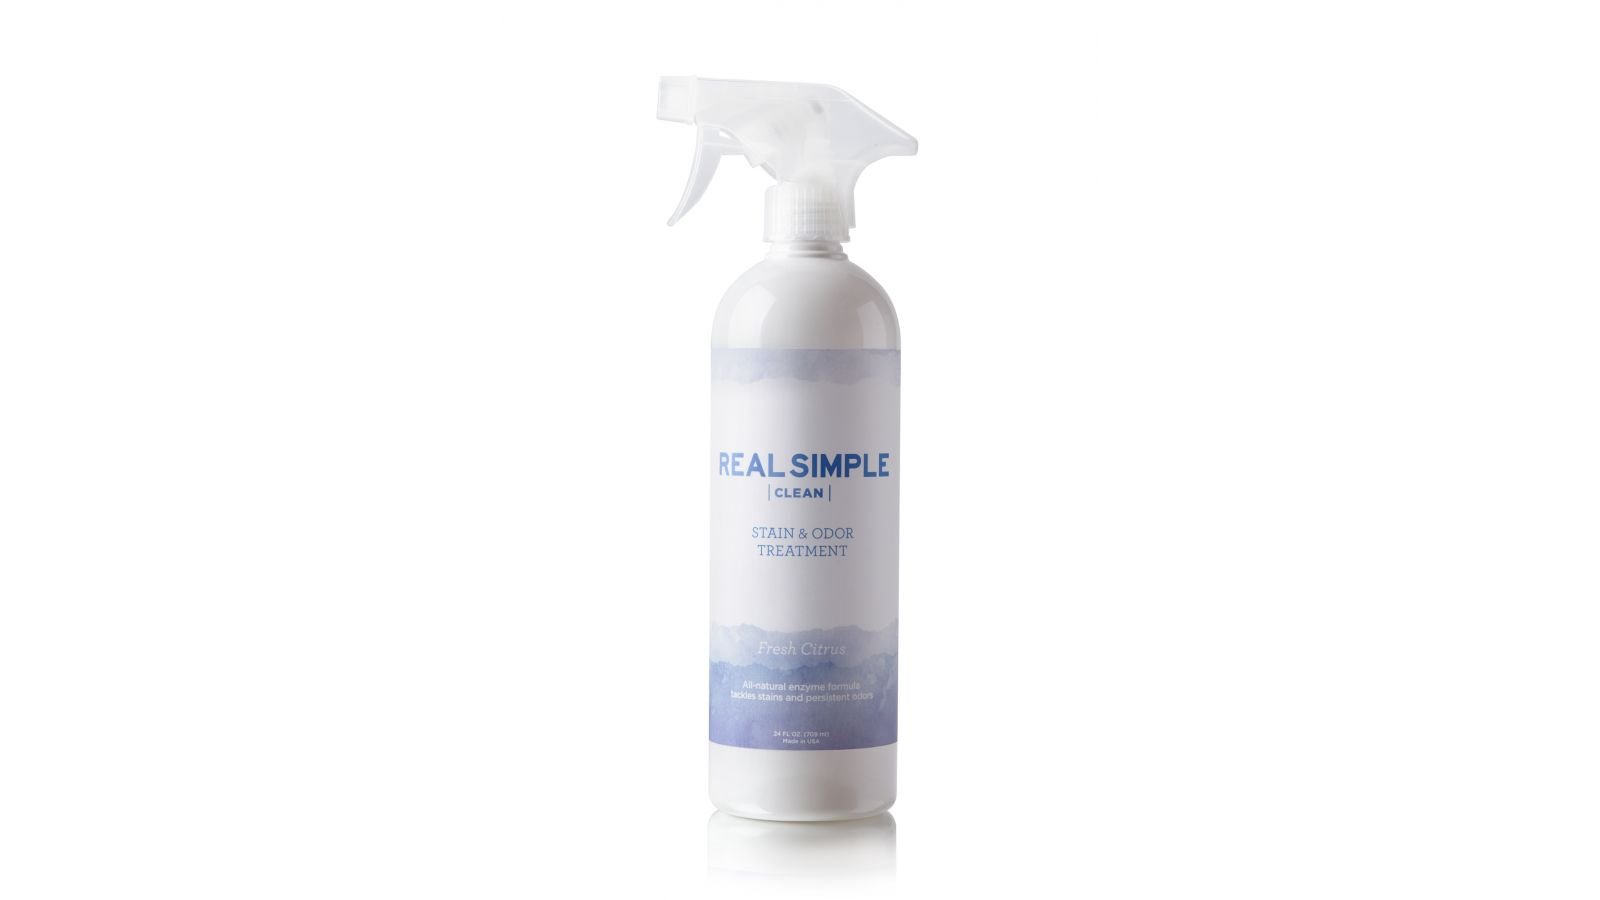 Real Simple Clean - Stain & Odor Treatment 24oz